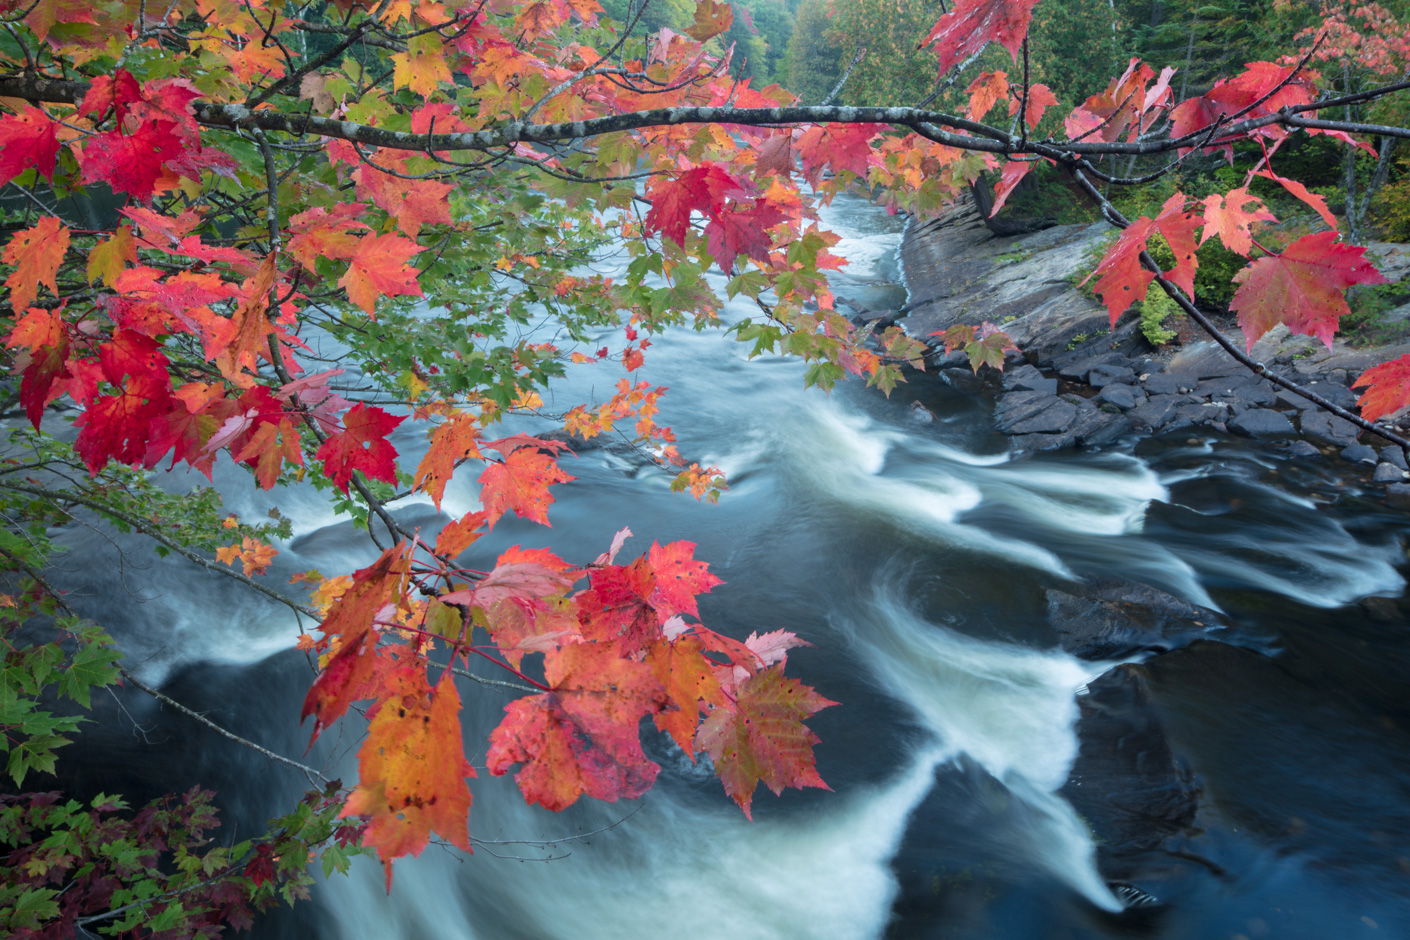 Autumn colours along the Oxtongue River, Oxtongue Rapids Park, Ontario, Canada